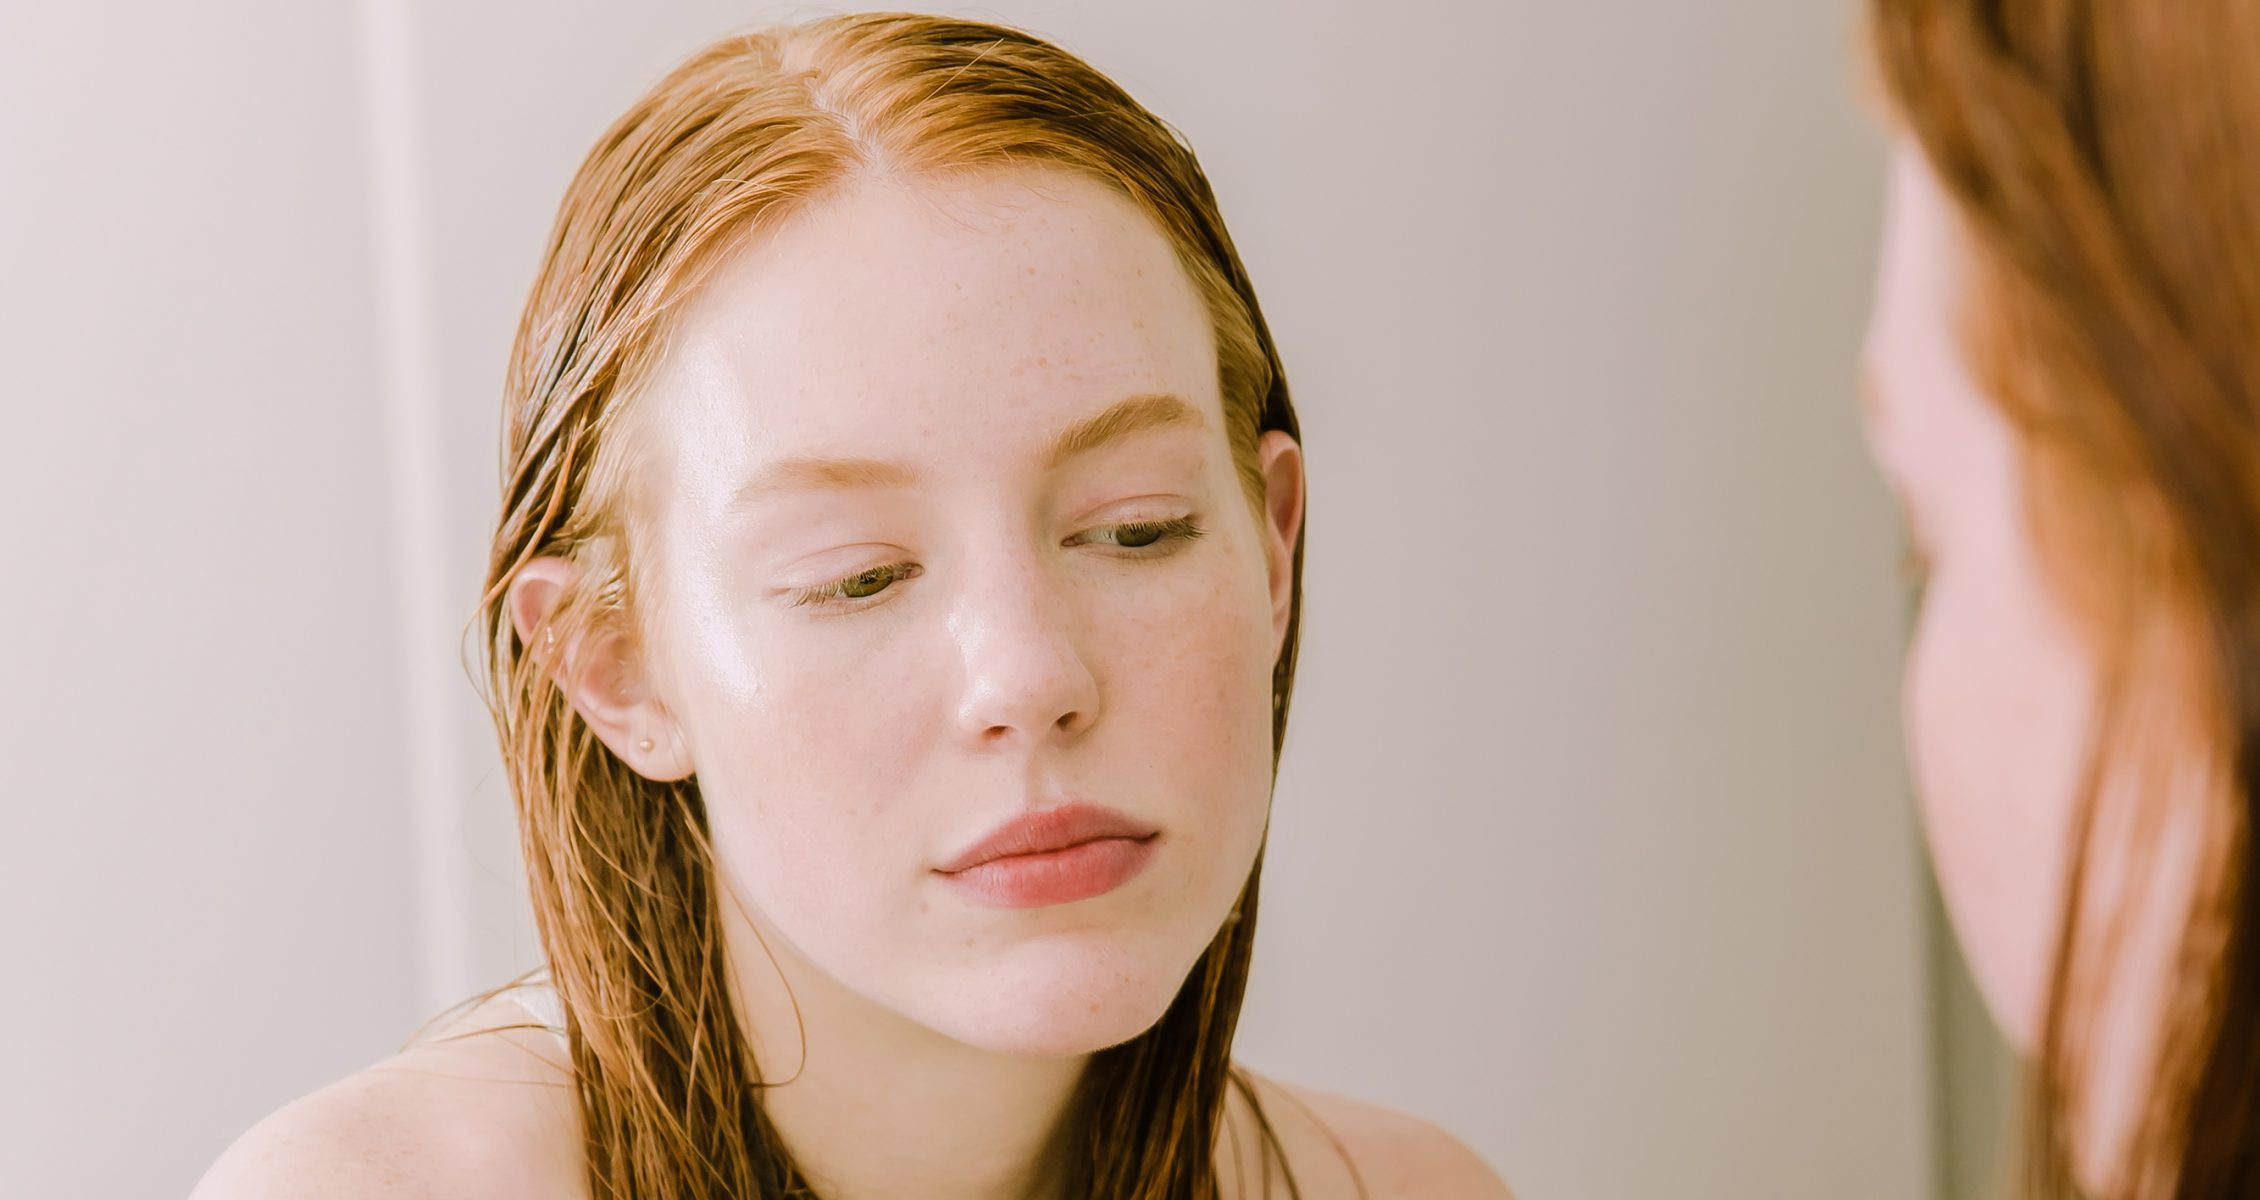 Woman with wet ginger colored hair observing her reflection in front of a bathroom mirror